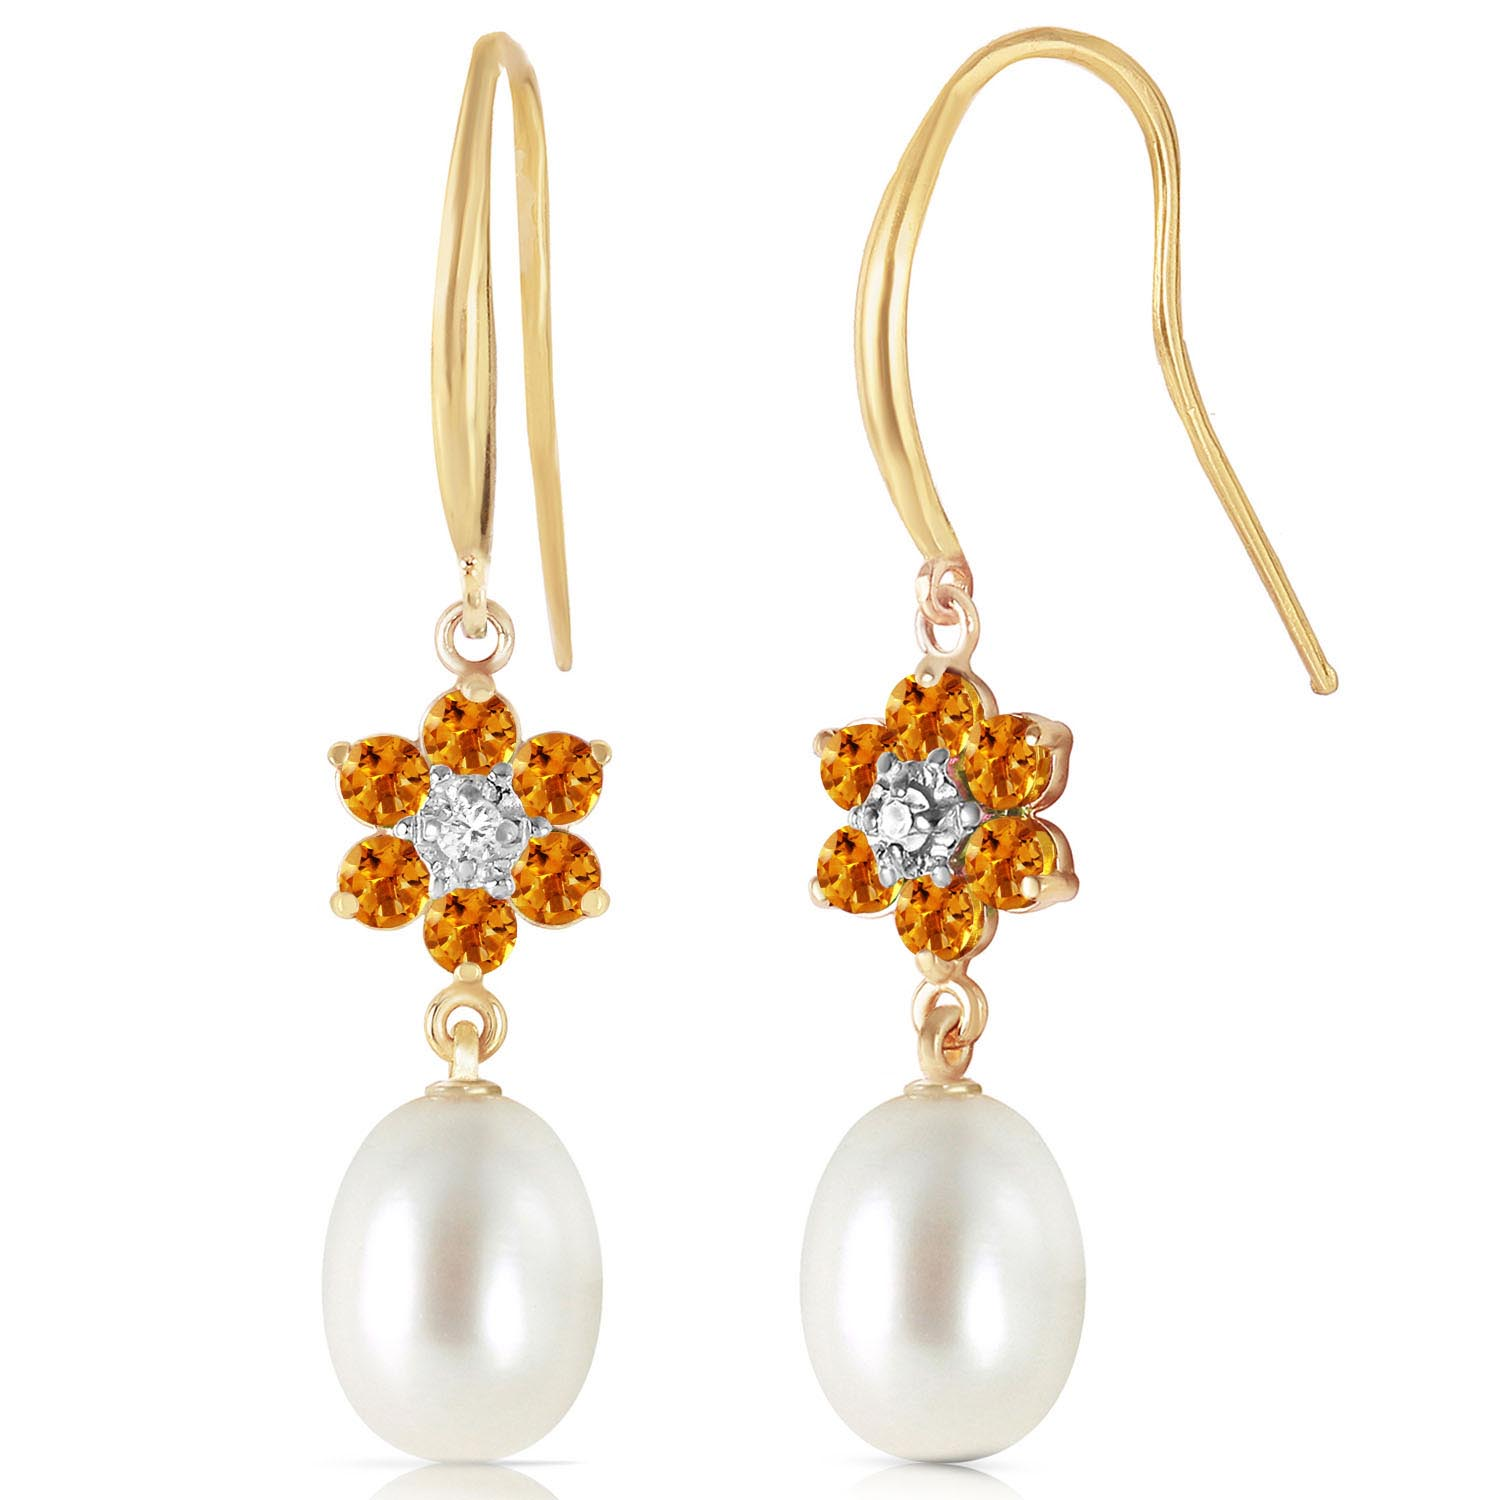 Pearl, Diamond & Citrine Daisy Chain Drop Earrings in 9ct Gold